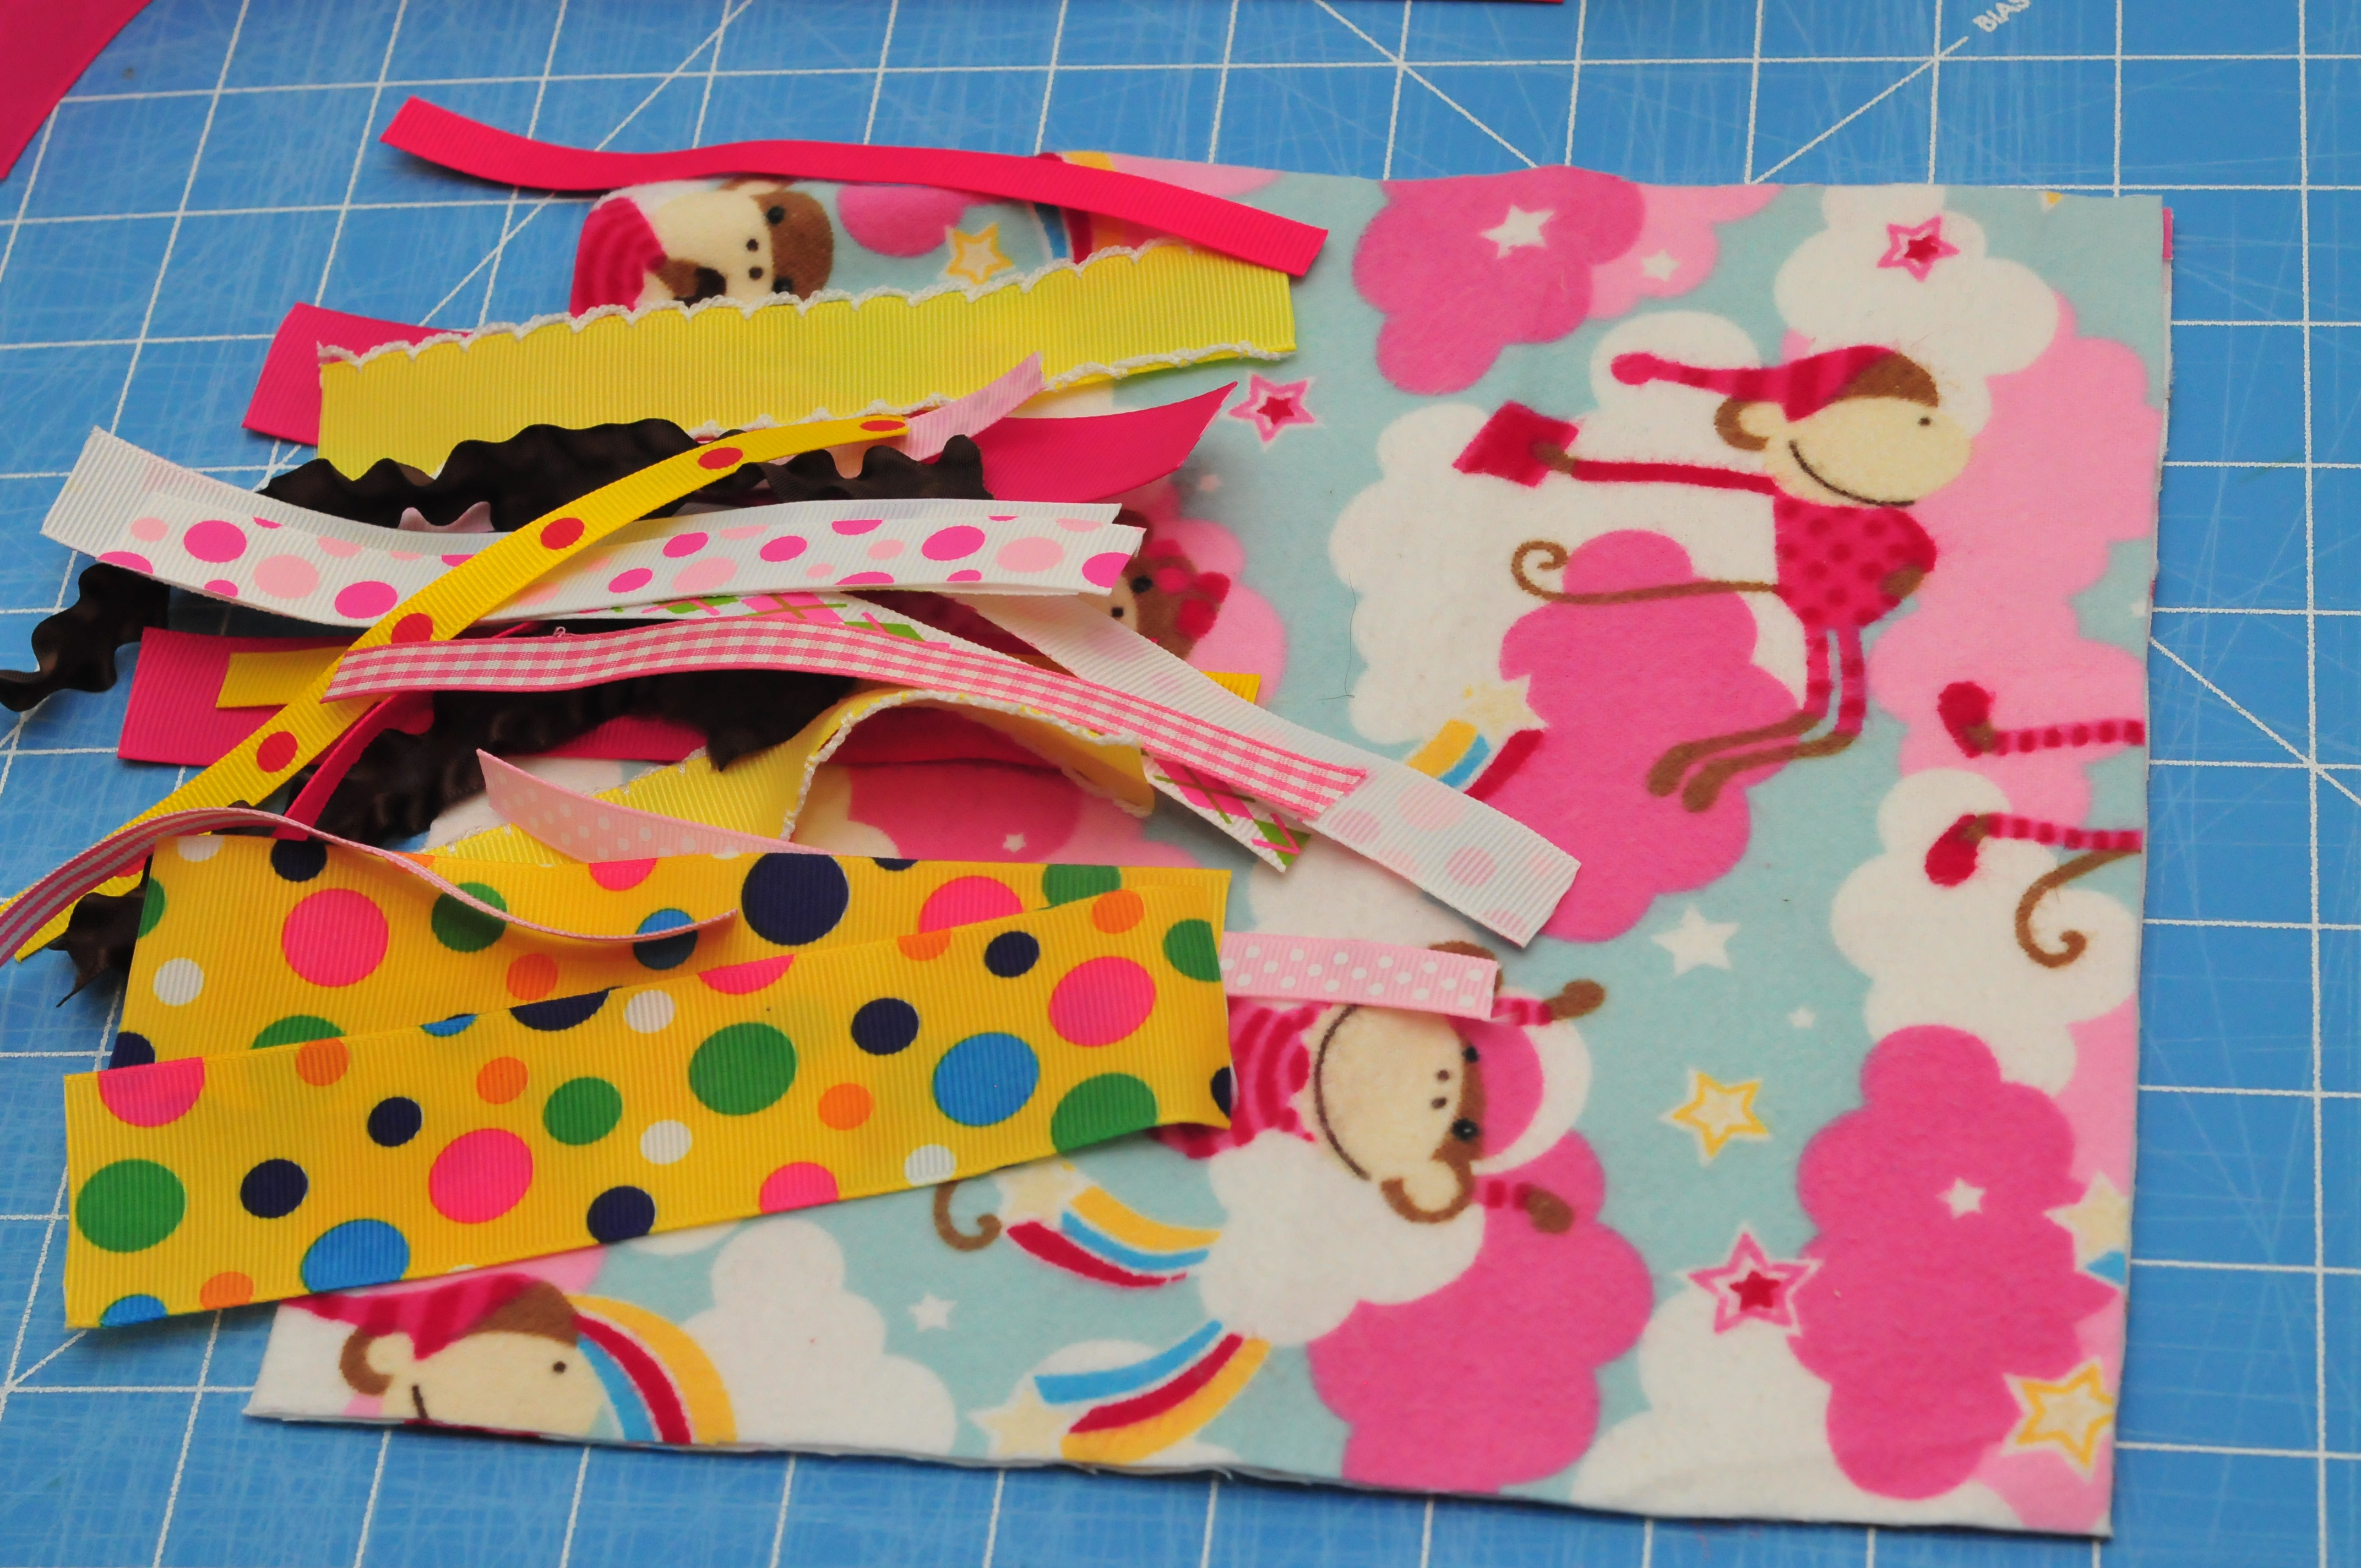 pink and blue monkeys in pjs on fabric with scraps of ribbon on top.